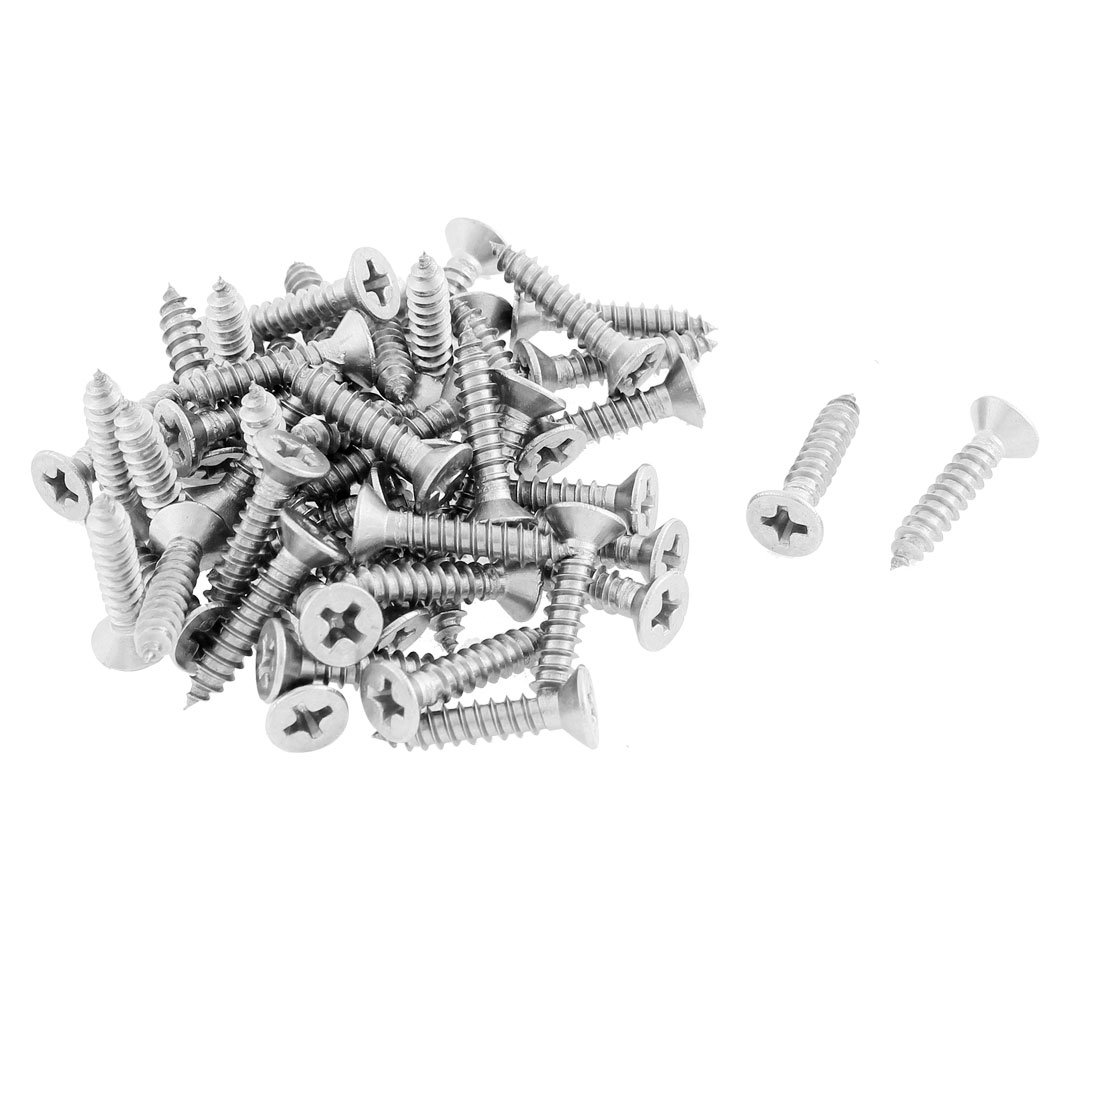 50 Pcs 3.9mmx19mm Stainless Steel Phillips Flat Head Sheet Self Tapping Screws